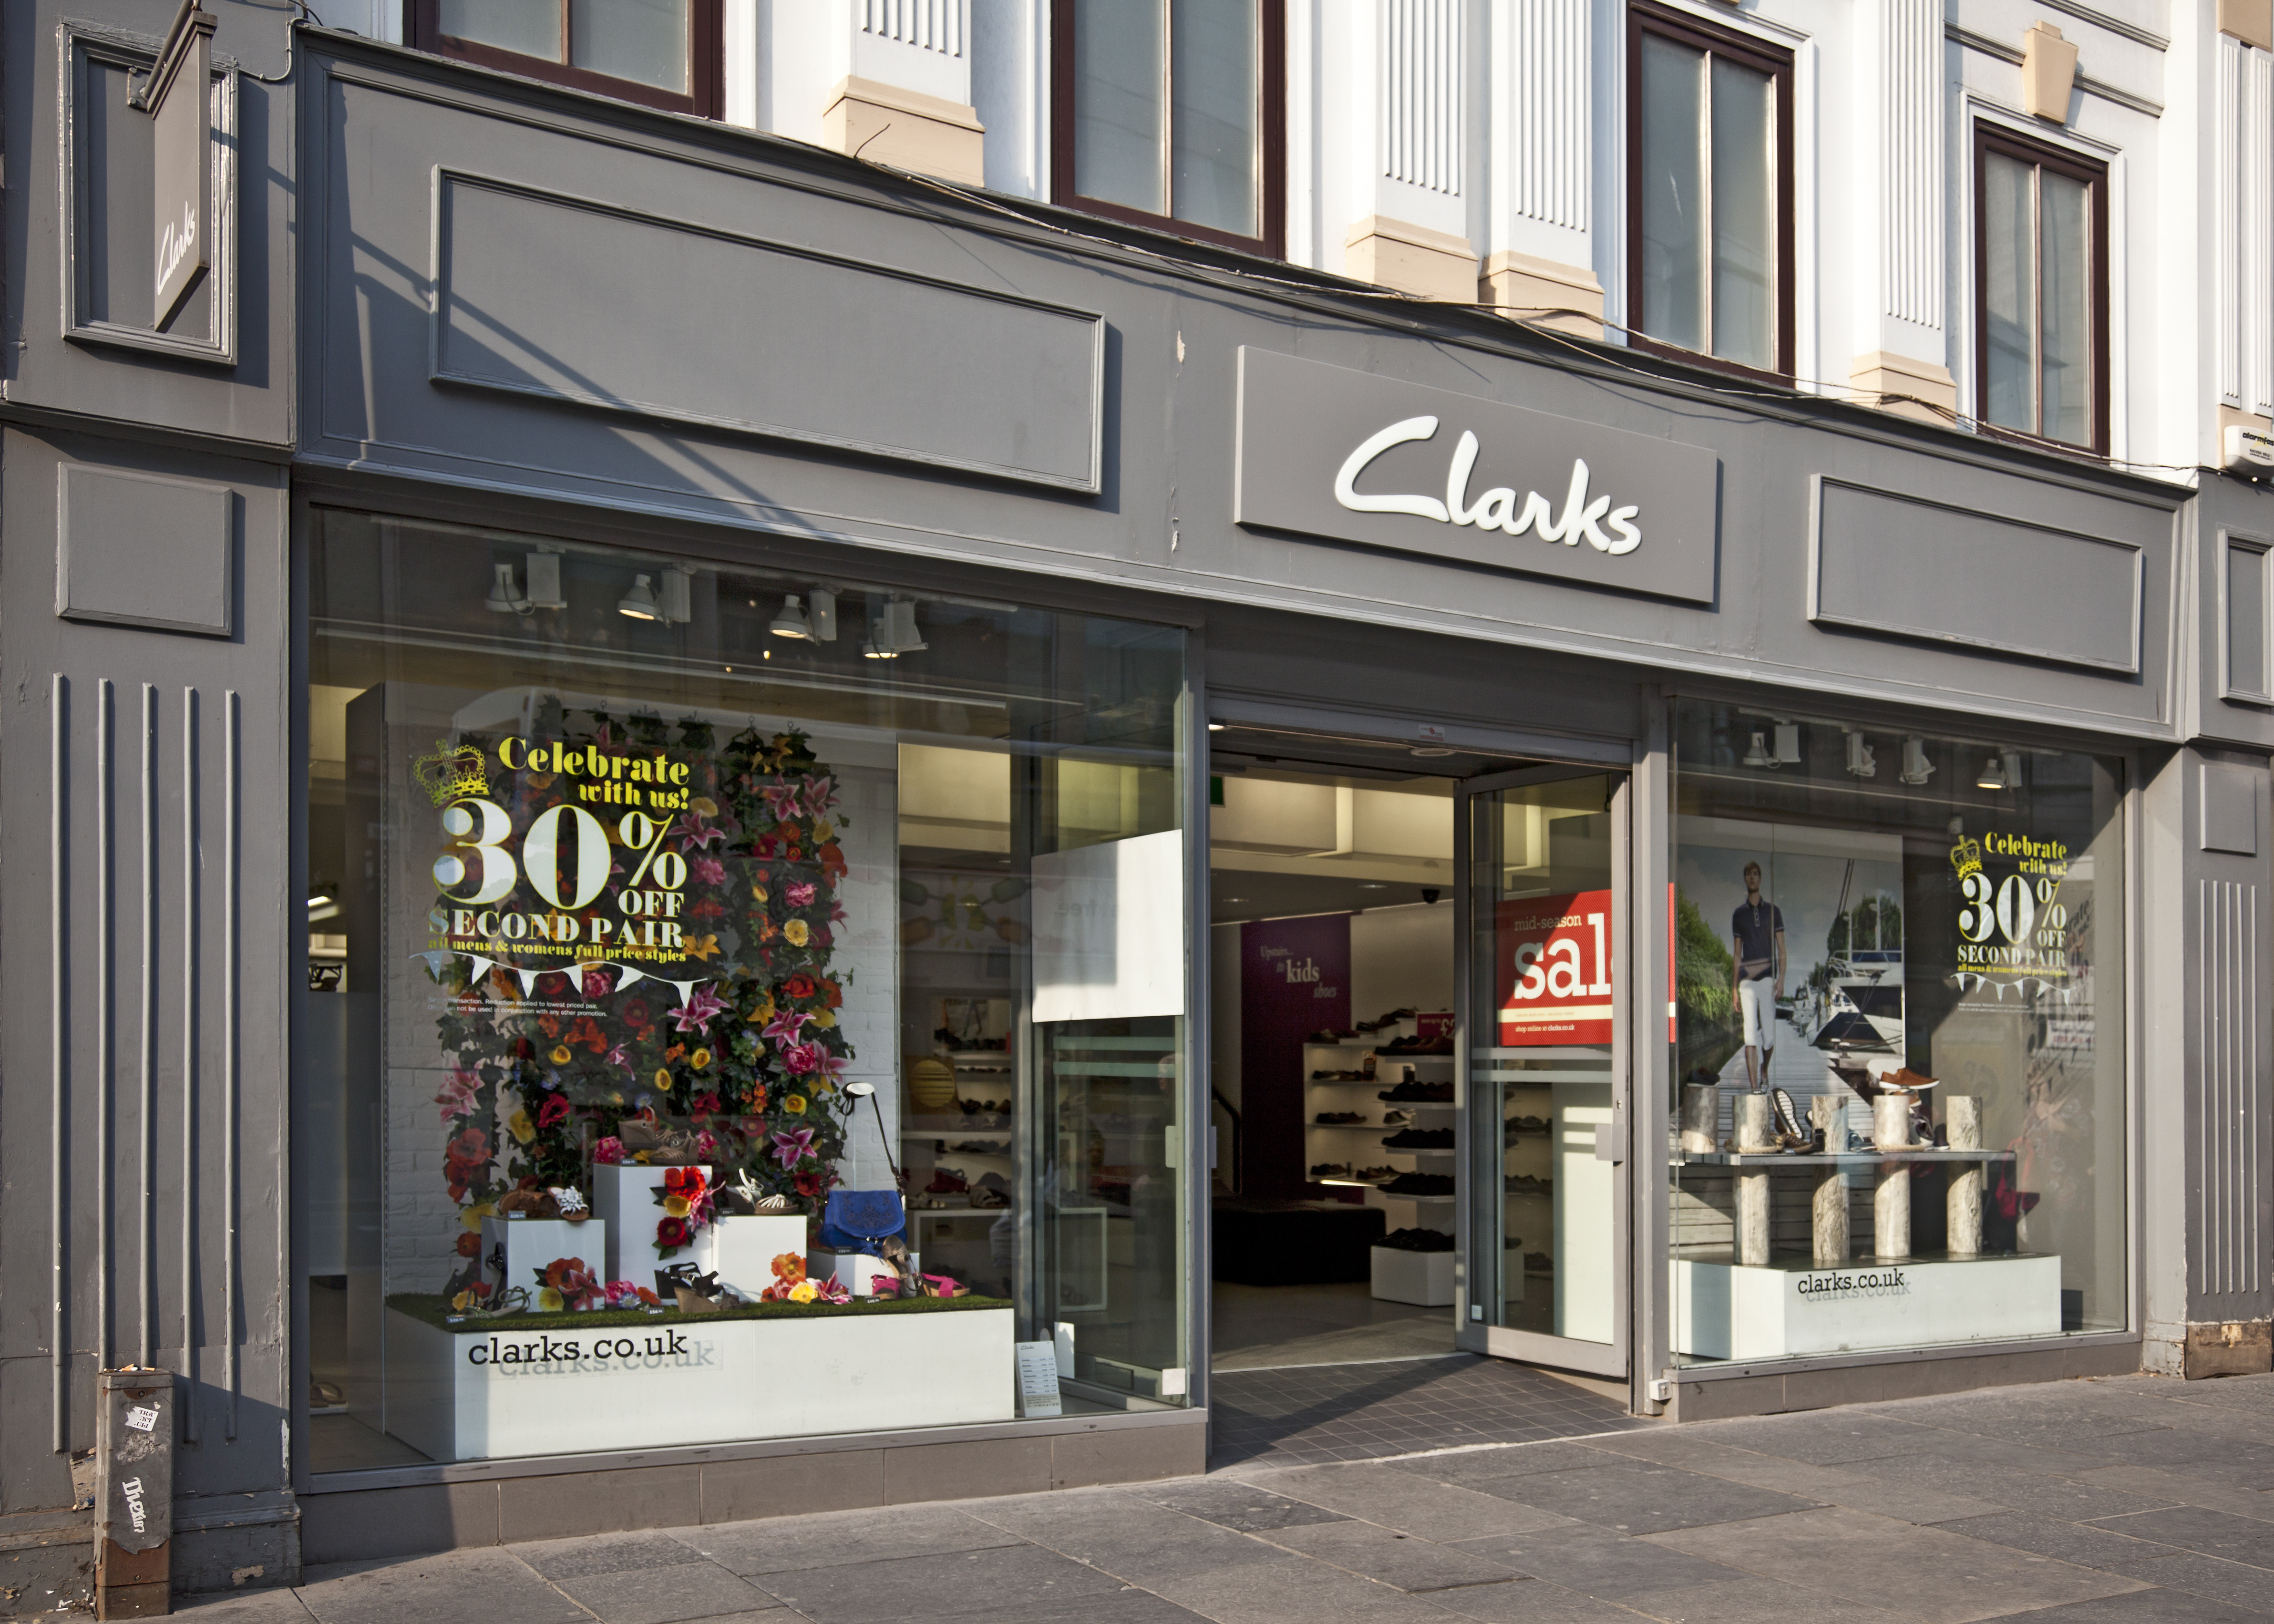 Frontage of a Clarks shoe shop in central Glasgow